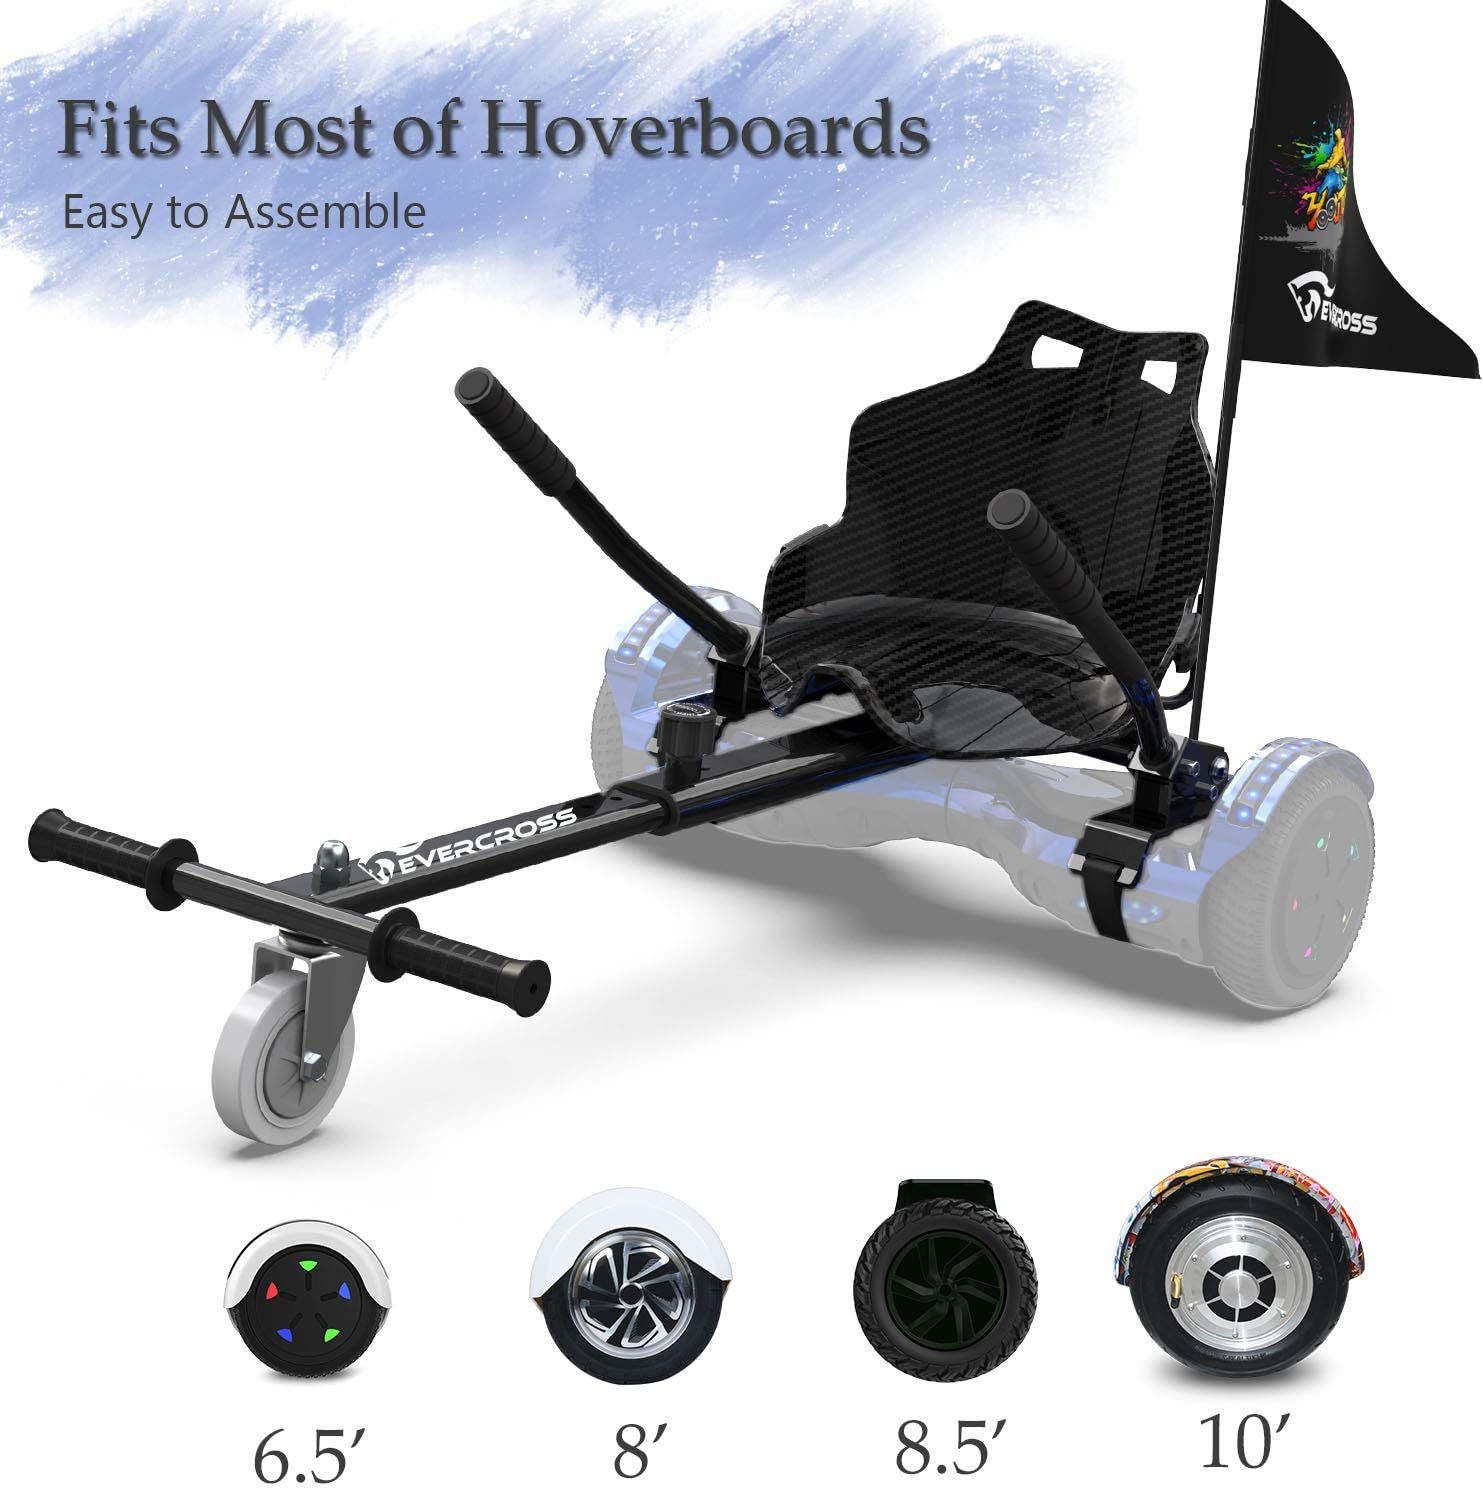 Hoverboard Attachments EverCross Hoverboard Seat Attachment Hoverboard Accessories with Adjustable Frame Length Compatible with 6.5 8 8.5 10 Hoverboard for Kids Adults